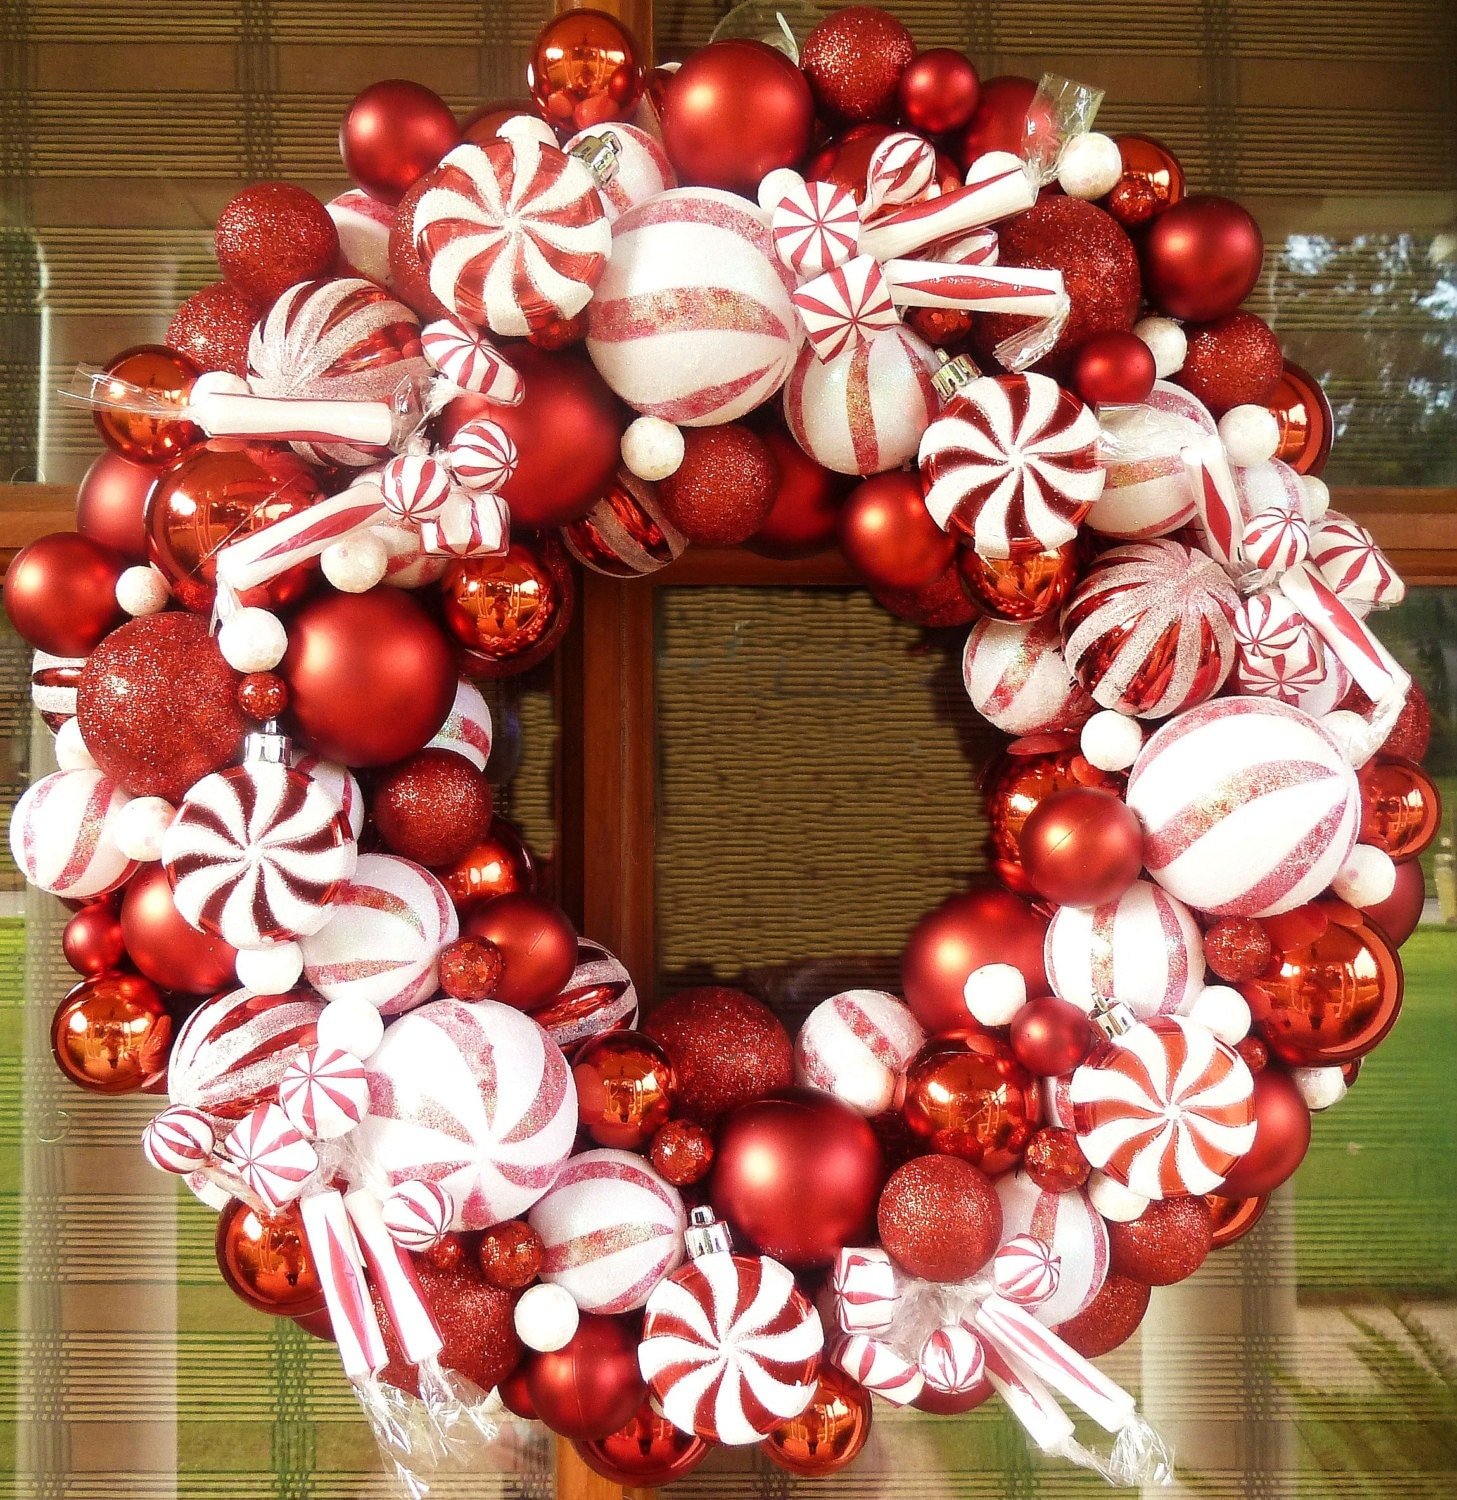 Christmas Candy Ornament Wreath Pre-Orders Ornament Wreath